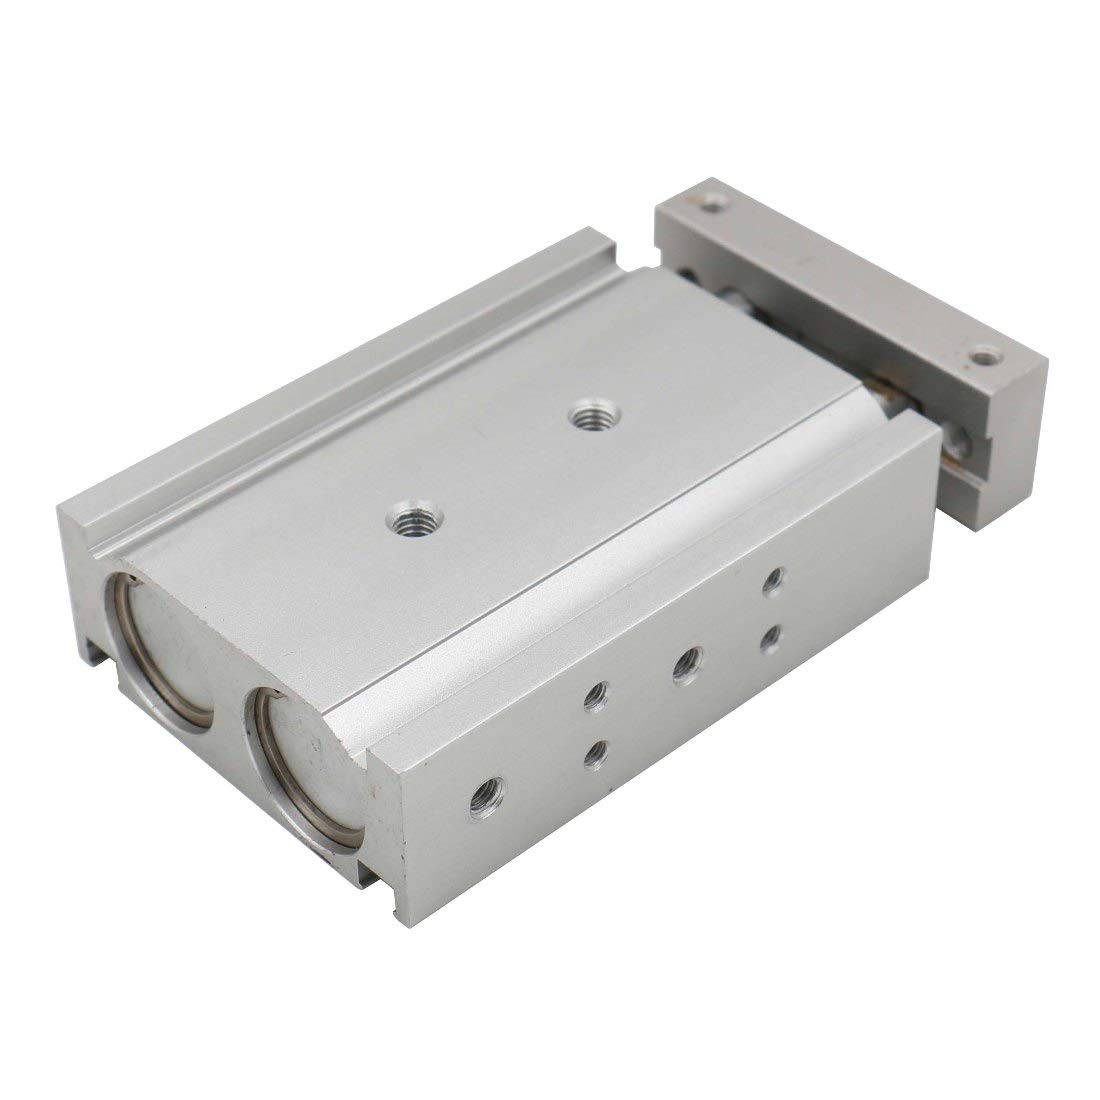 Baomain Compact Aluminum Air Cylinder CXSM 15-40 Guide Rod Plate Double Rod Guided Pneumatic Slide Bearing Cushioned